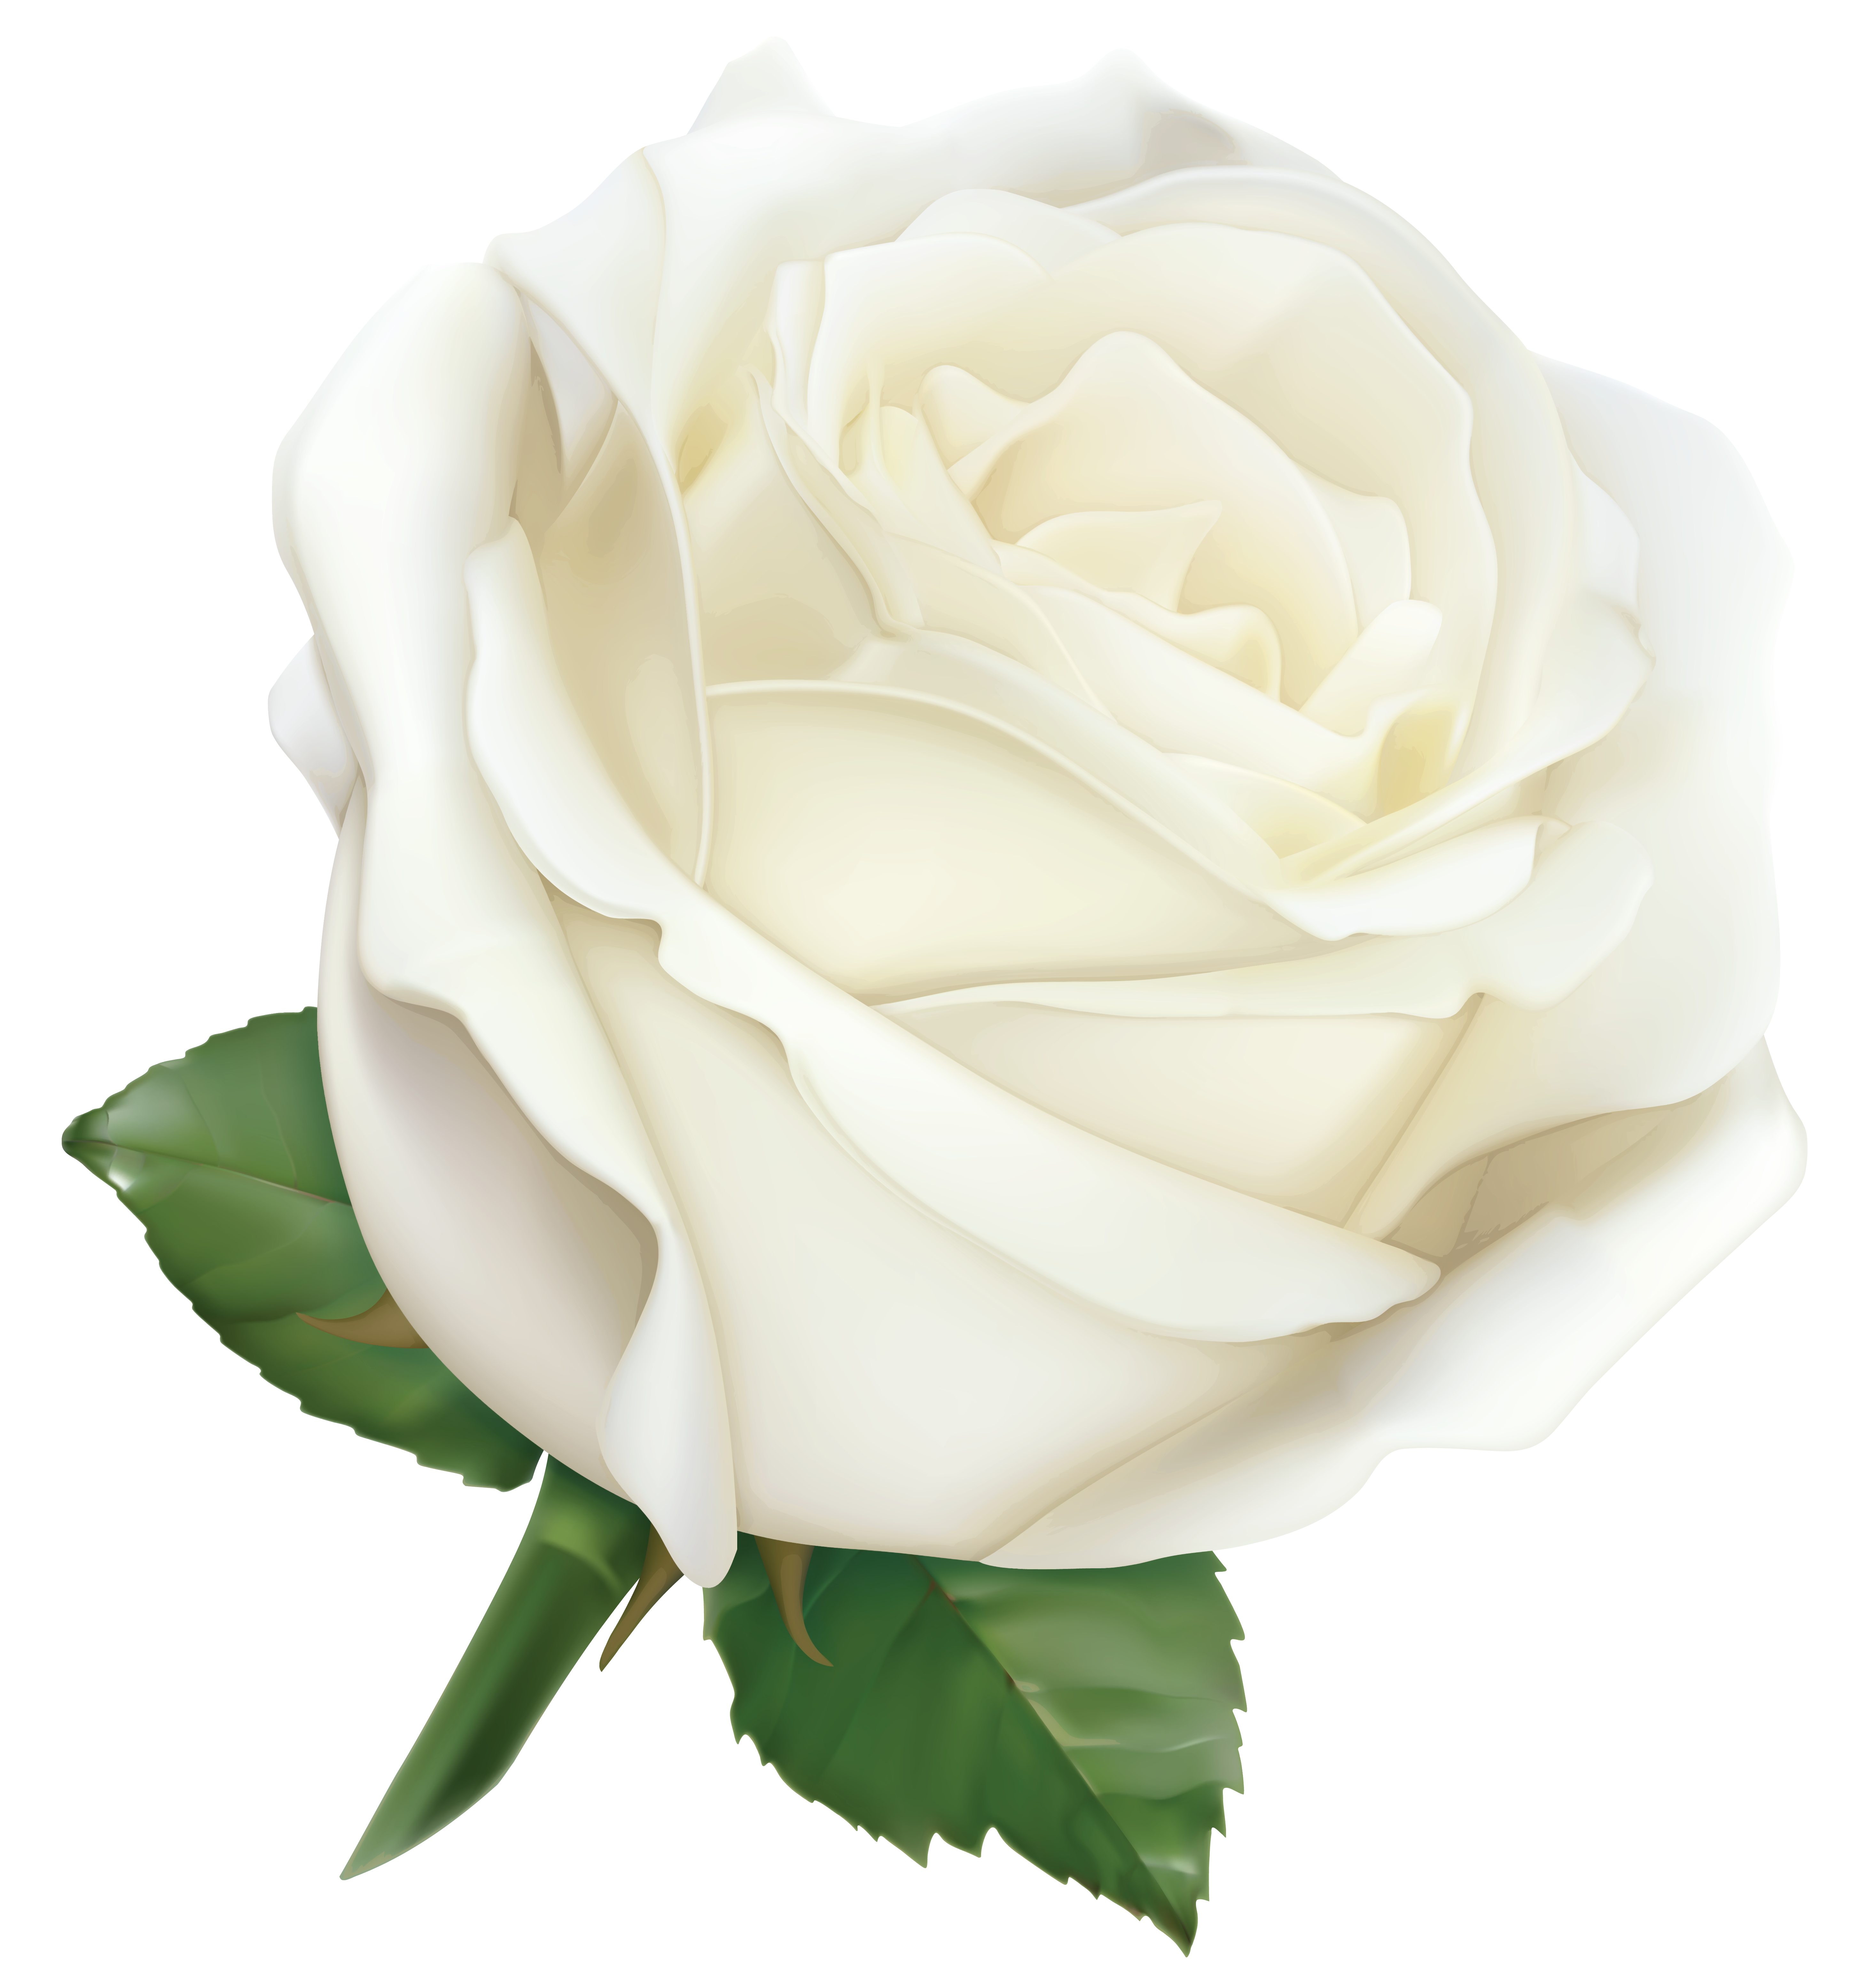 Clipart roses pearl. Large white rose png